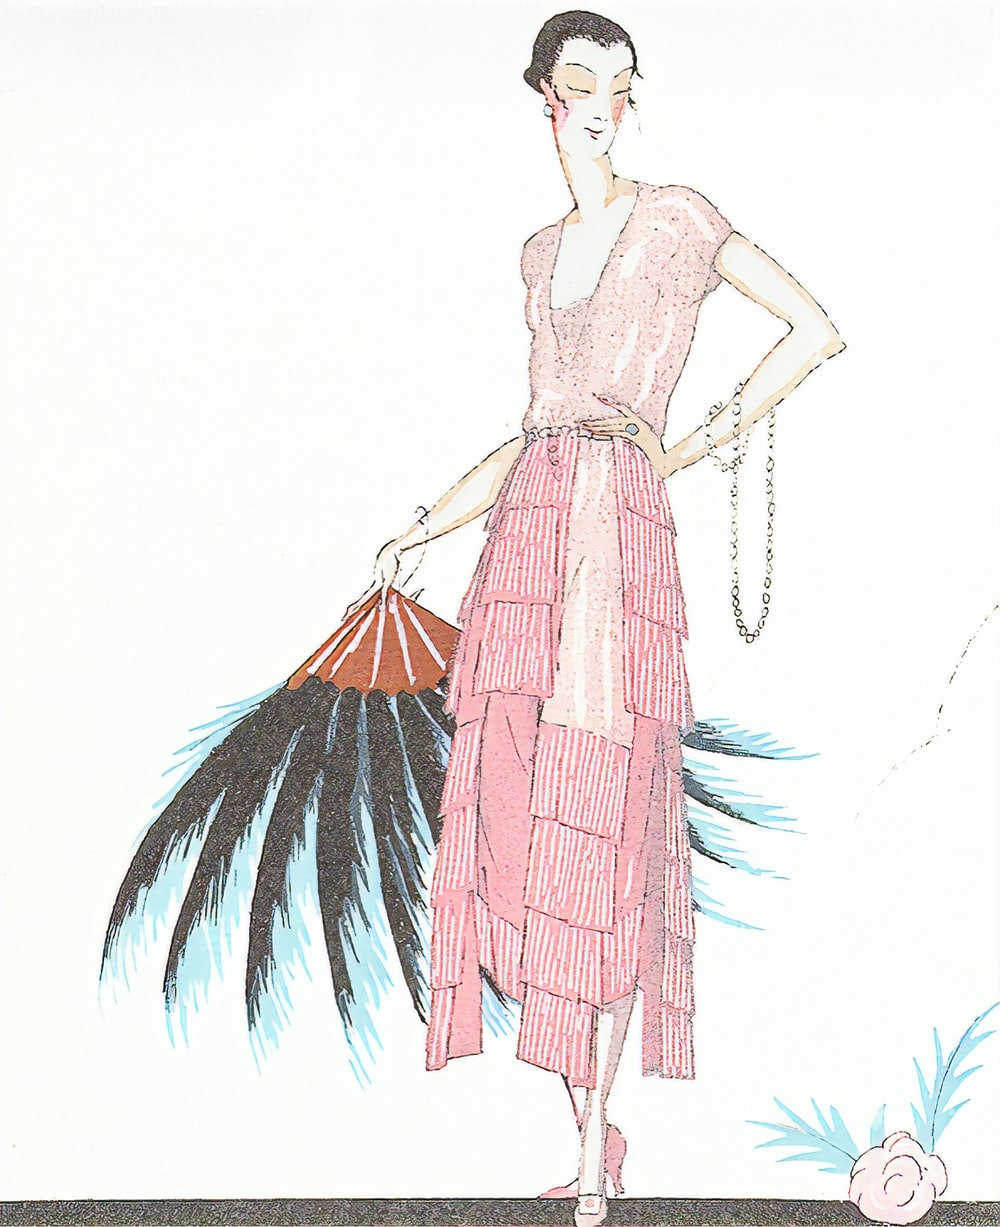 woman in pink dress standing on tree branch